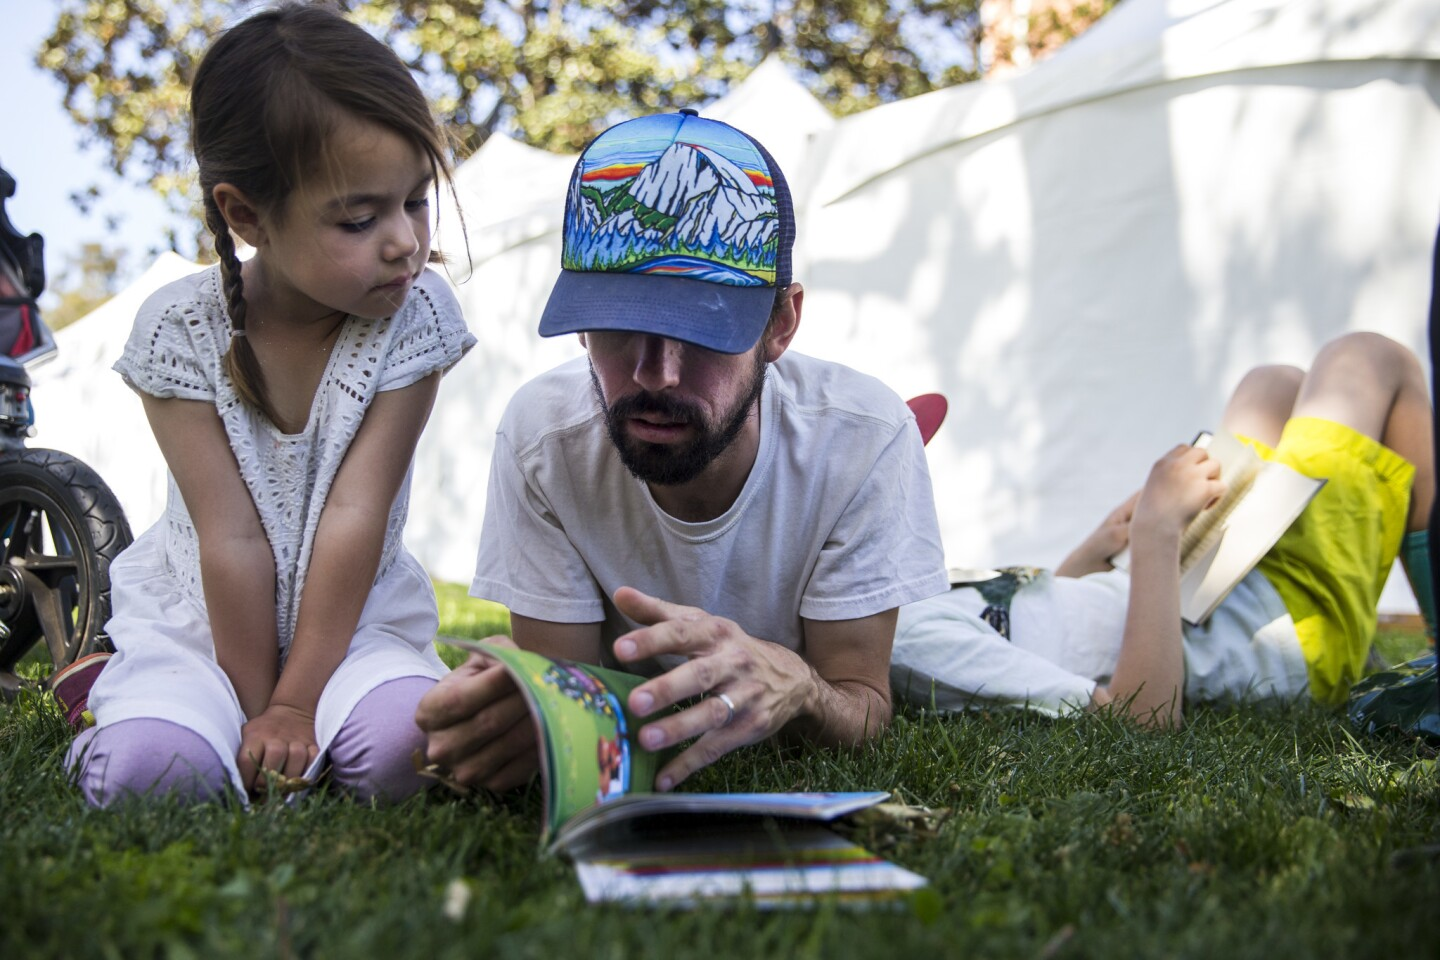 Aurora Carrillo-Vincent, 5, and Matthew Carrillo-Vincent, 35, read together during the Los Angeles Times Festival of Books at USC on Sunday.